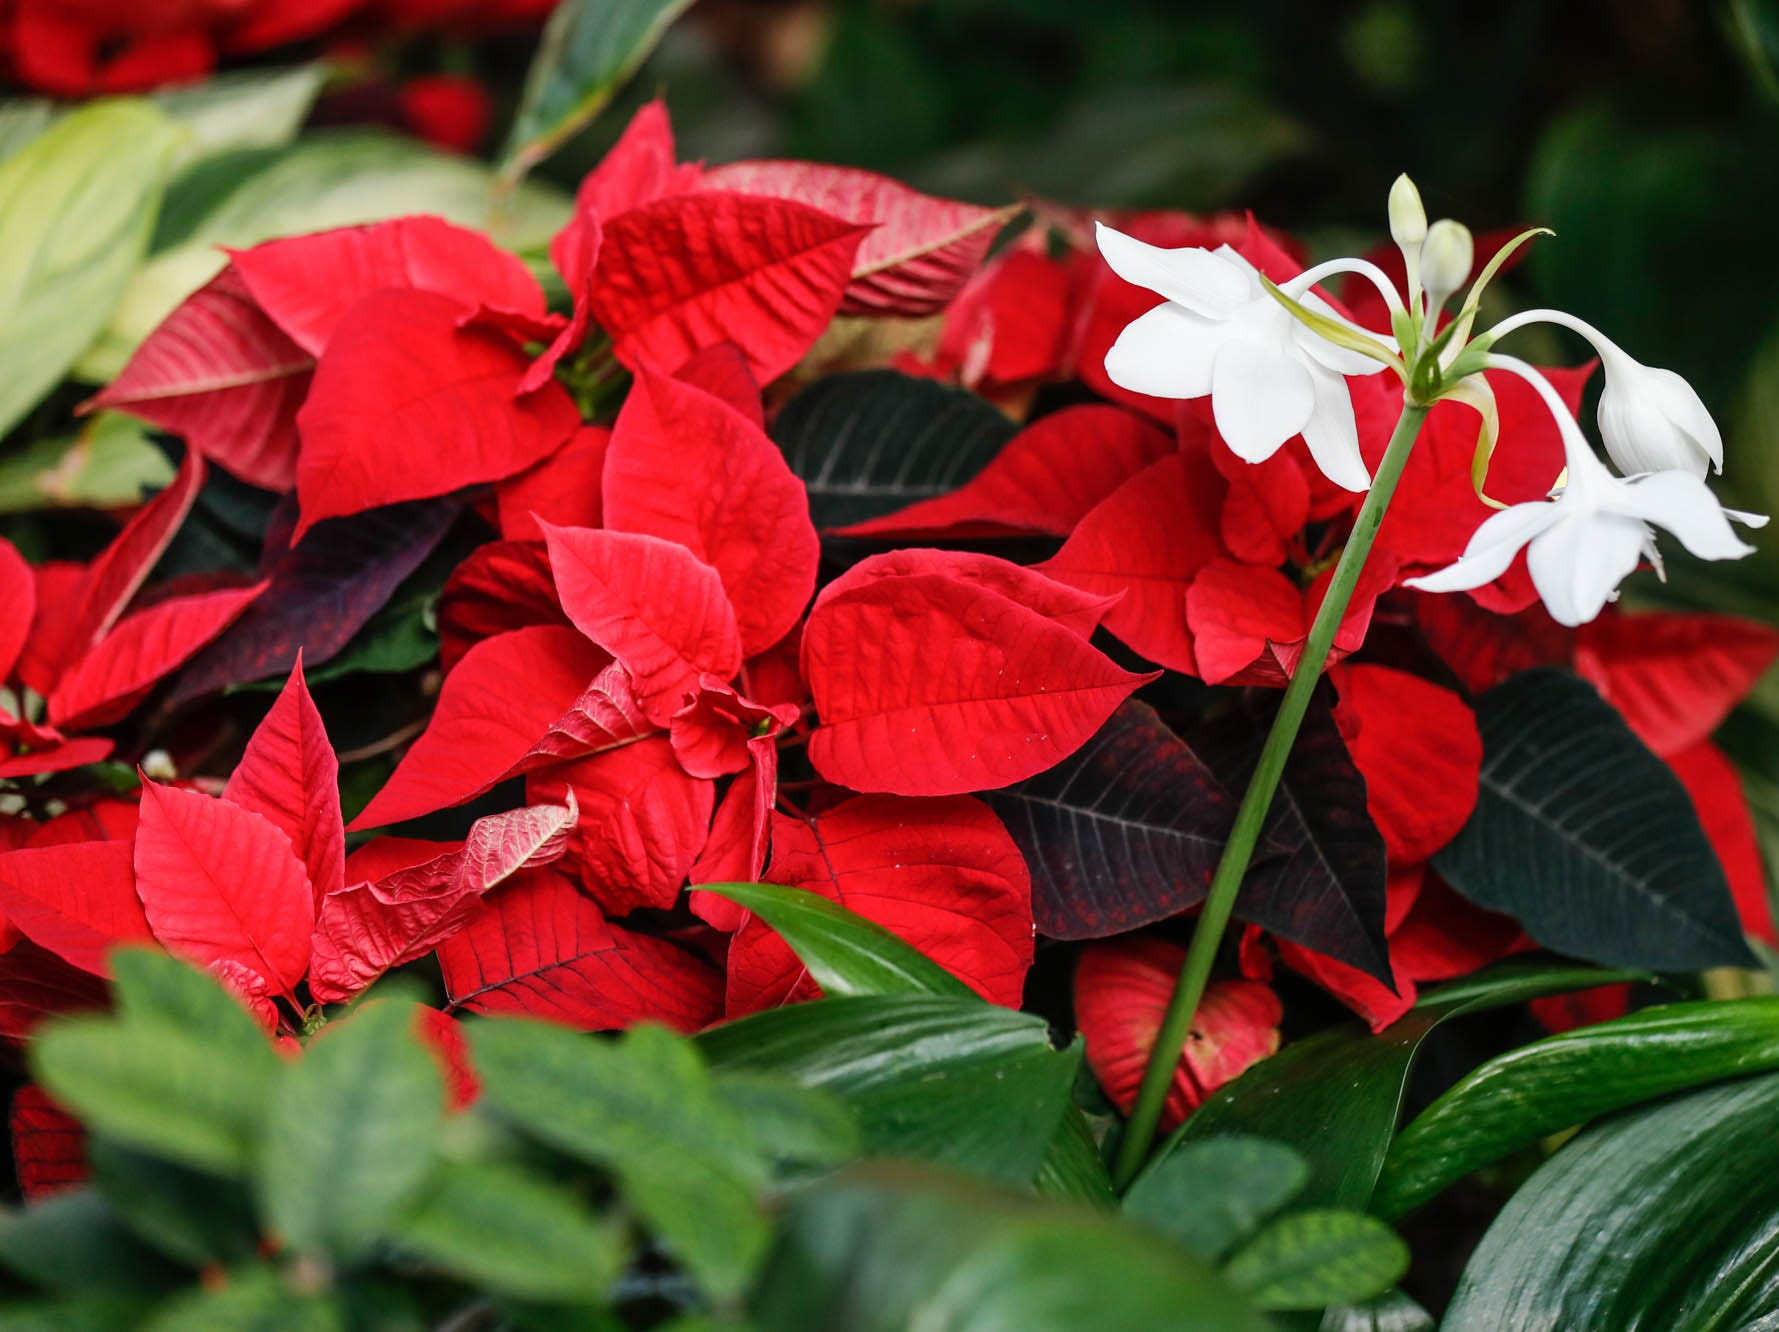 Christmas poinsettias are mixed with tropical plants in the Conservatory Crossing holiday display at the Garfield Park Conservatory on Saturday, Dec. 29, 2018.